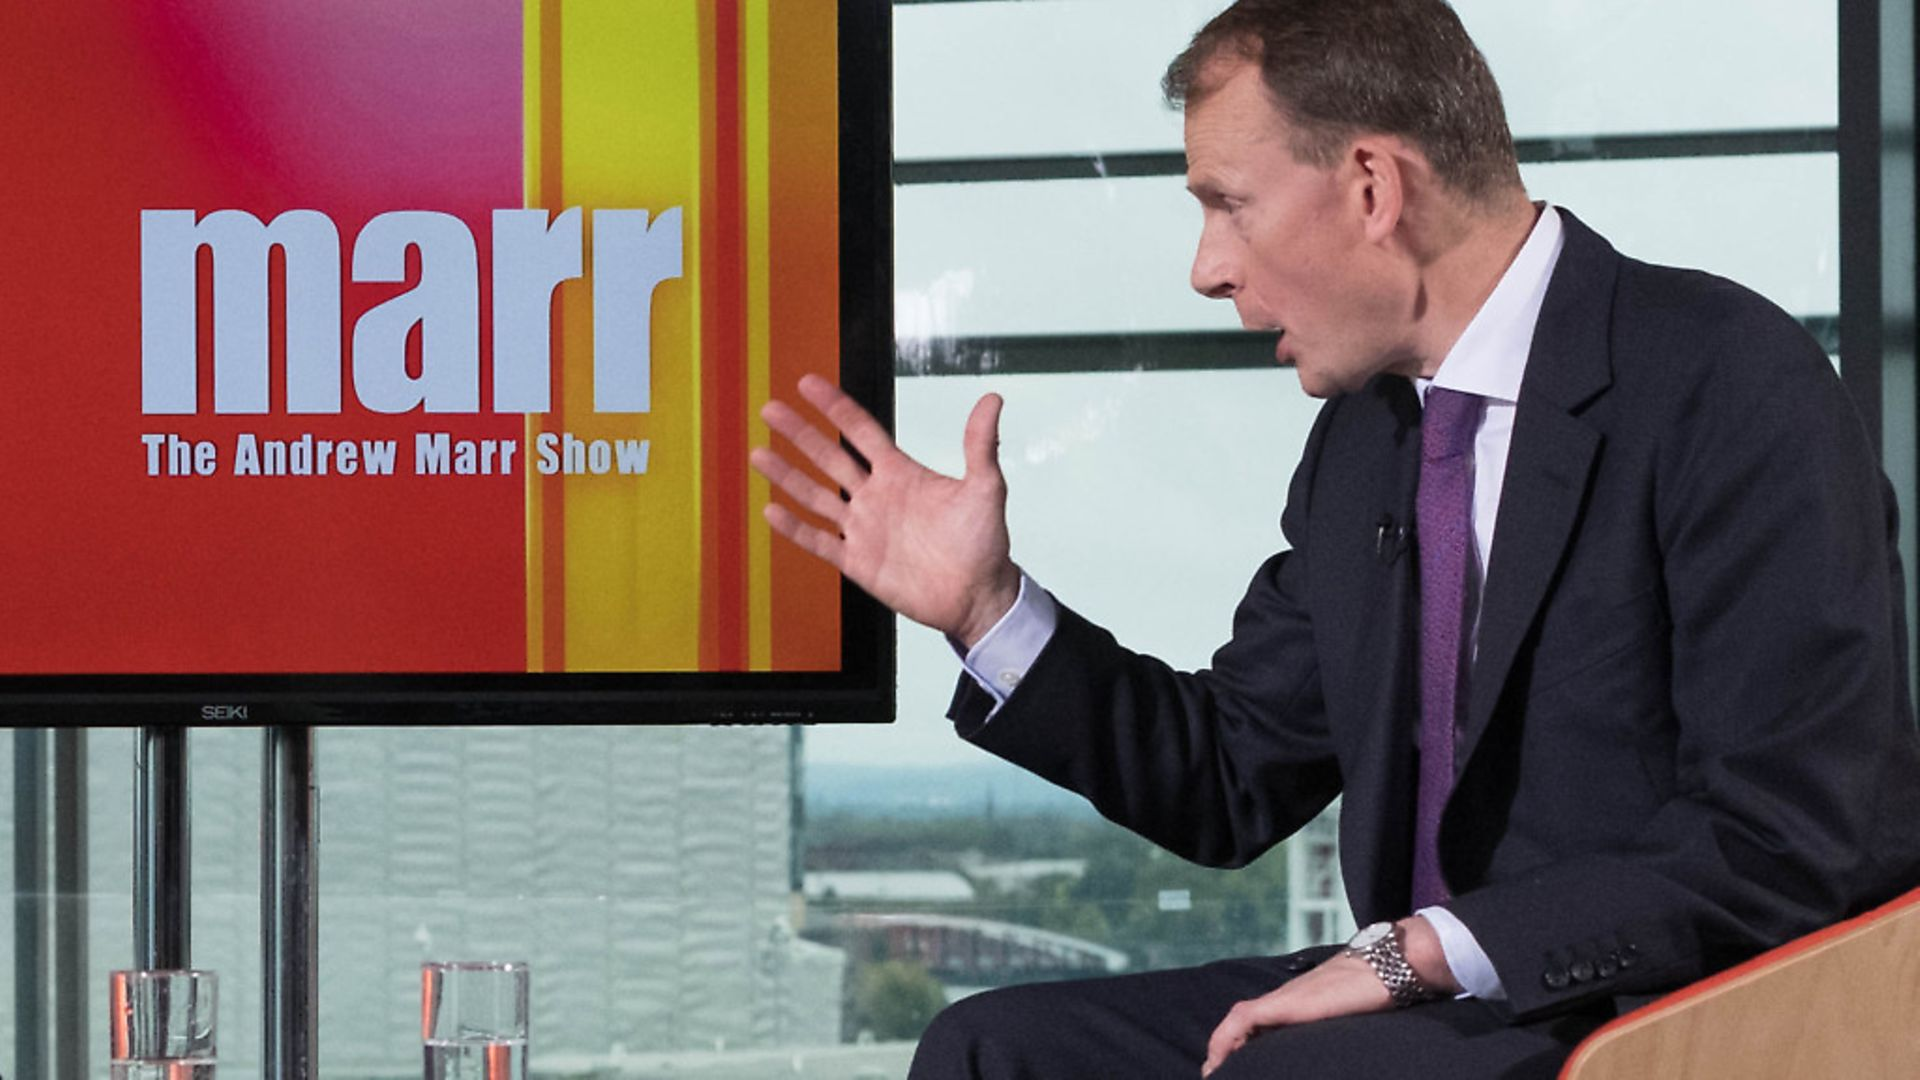 The Andrew Marr Show. Photograph: Stefan Rousseau/PA. - Credit: PA Wire/PA Images